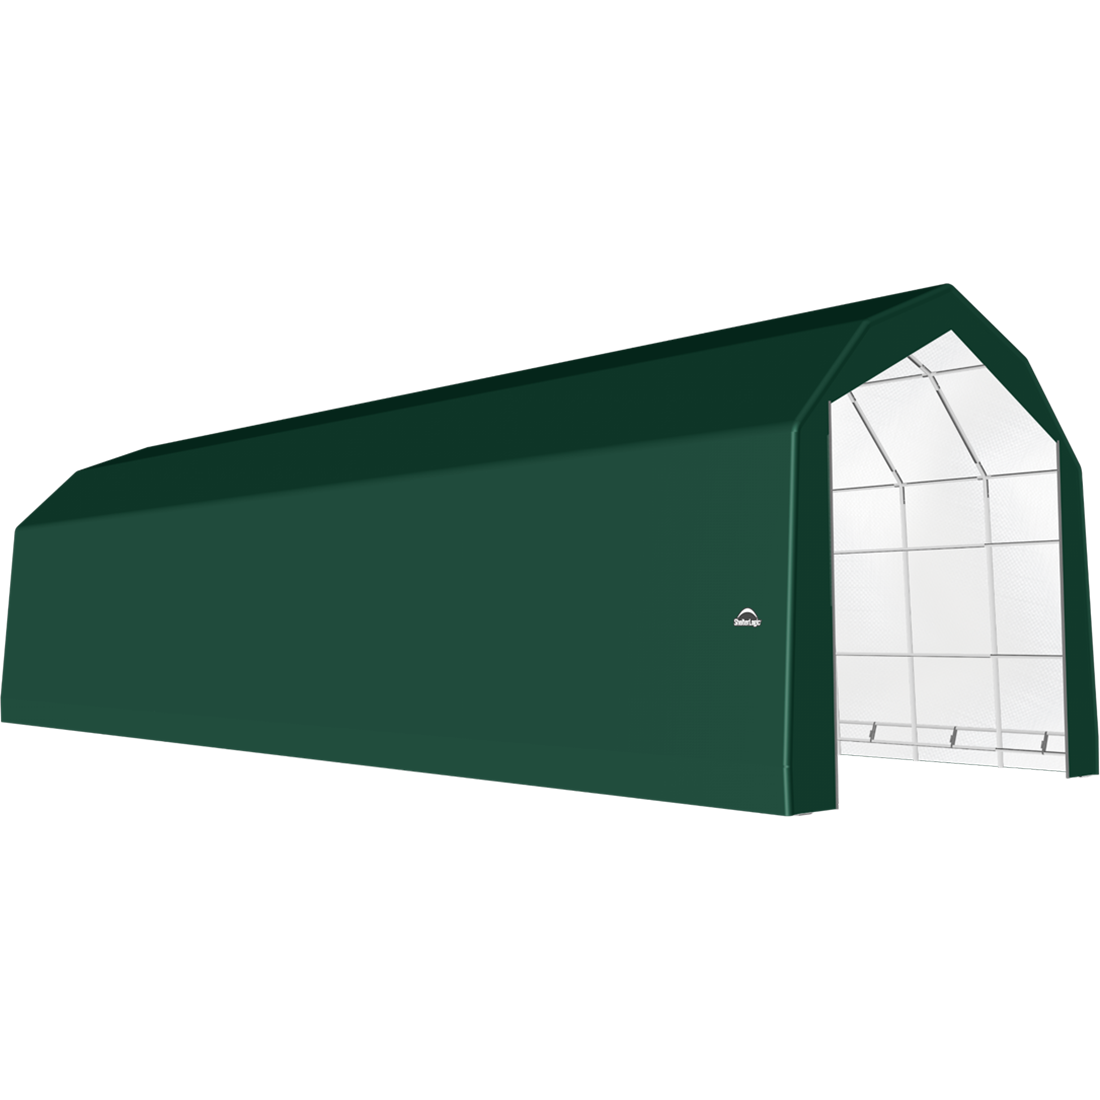 SP Barn 20X52X18 Green 14 oz PE Shelter